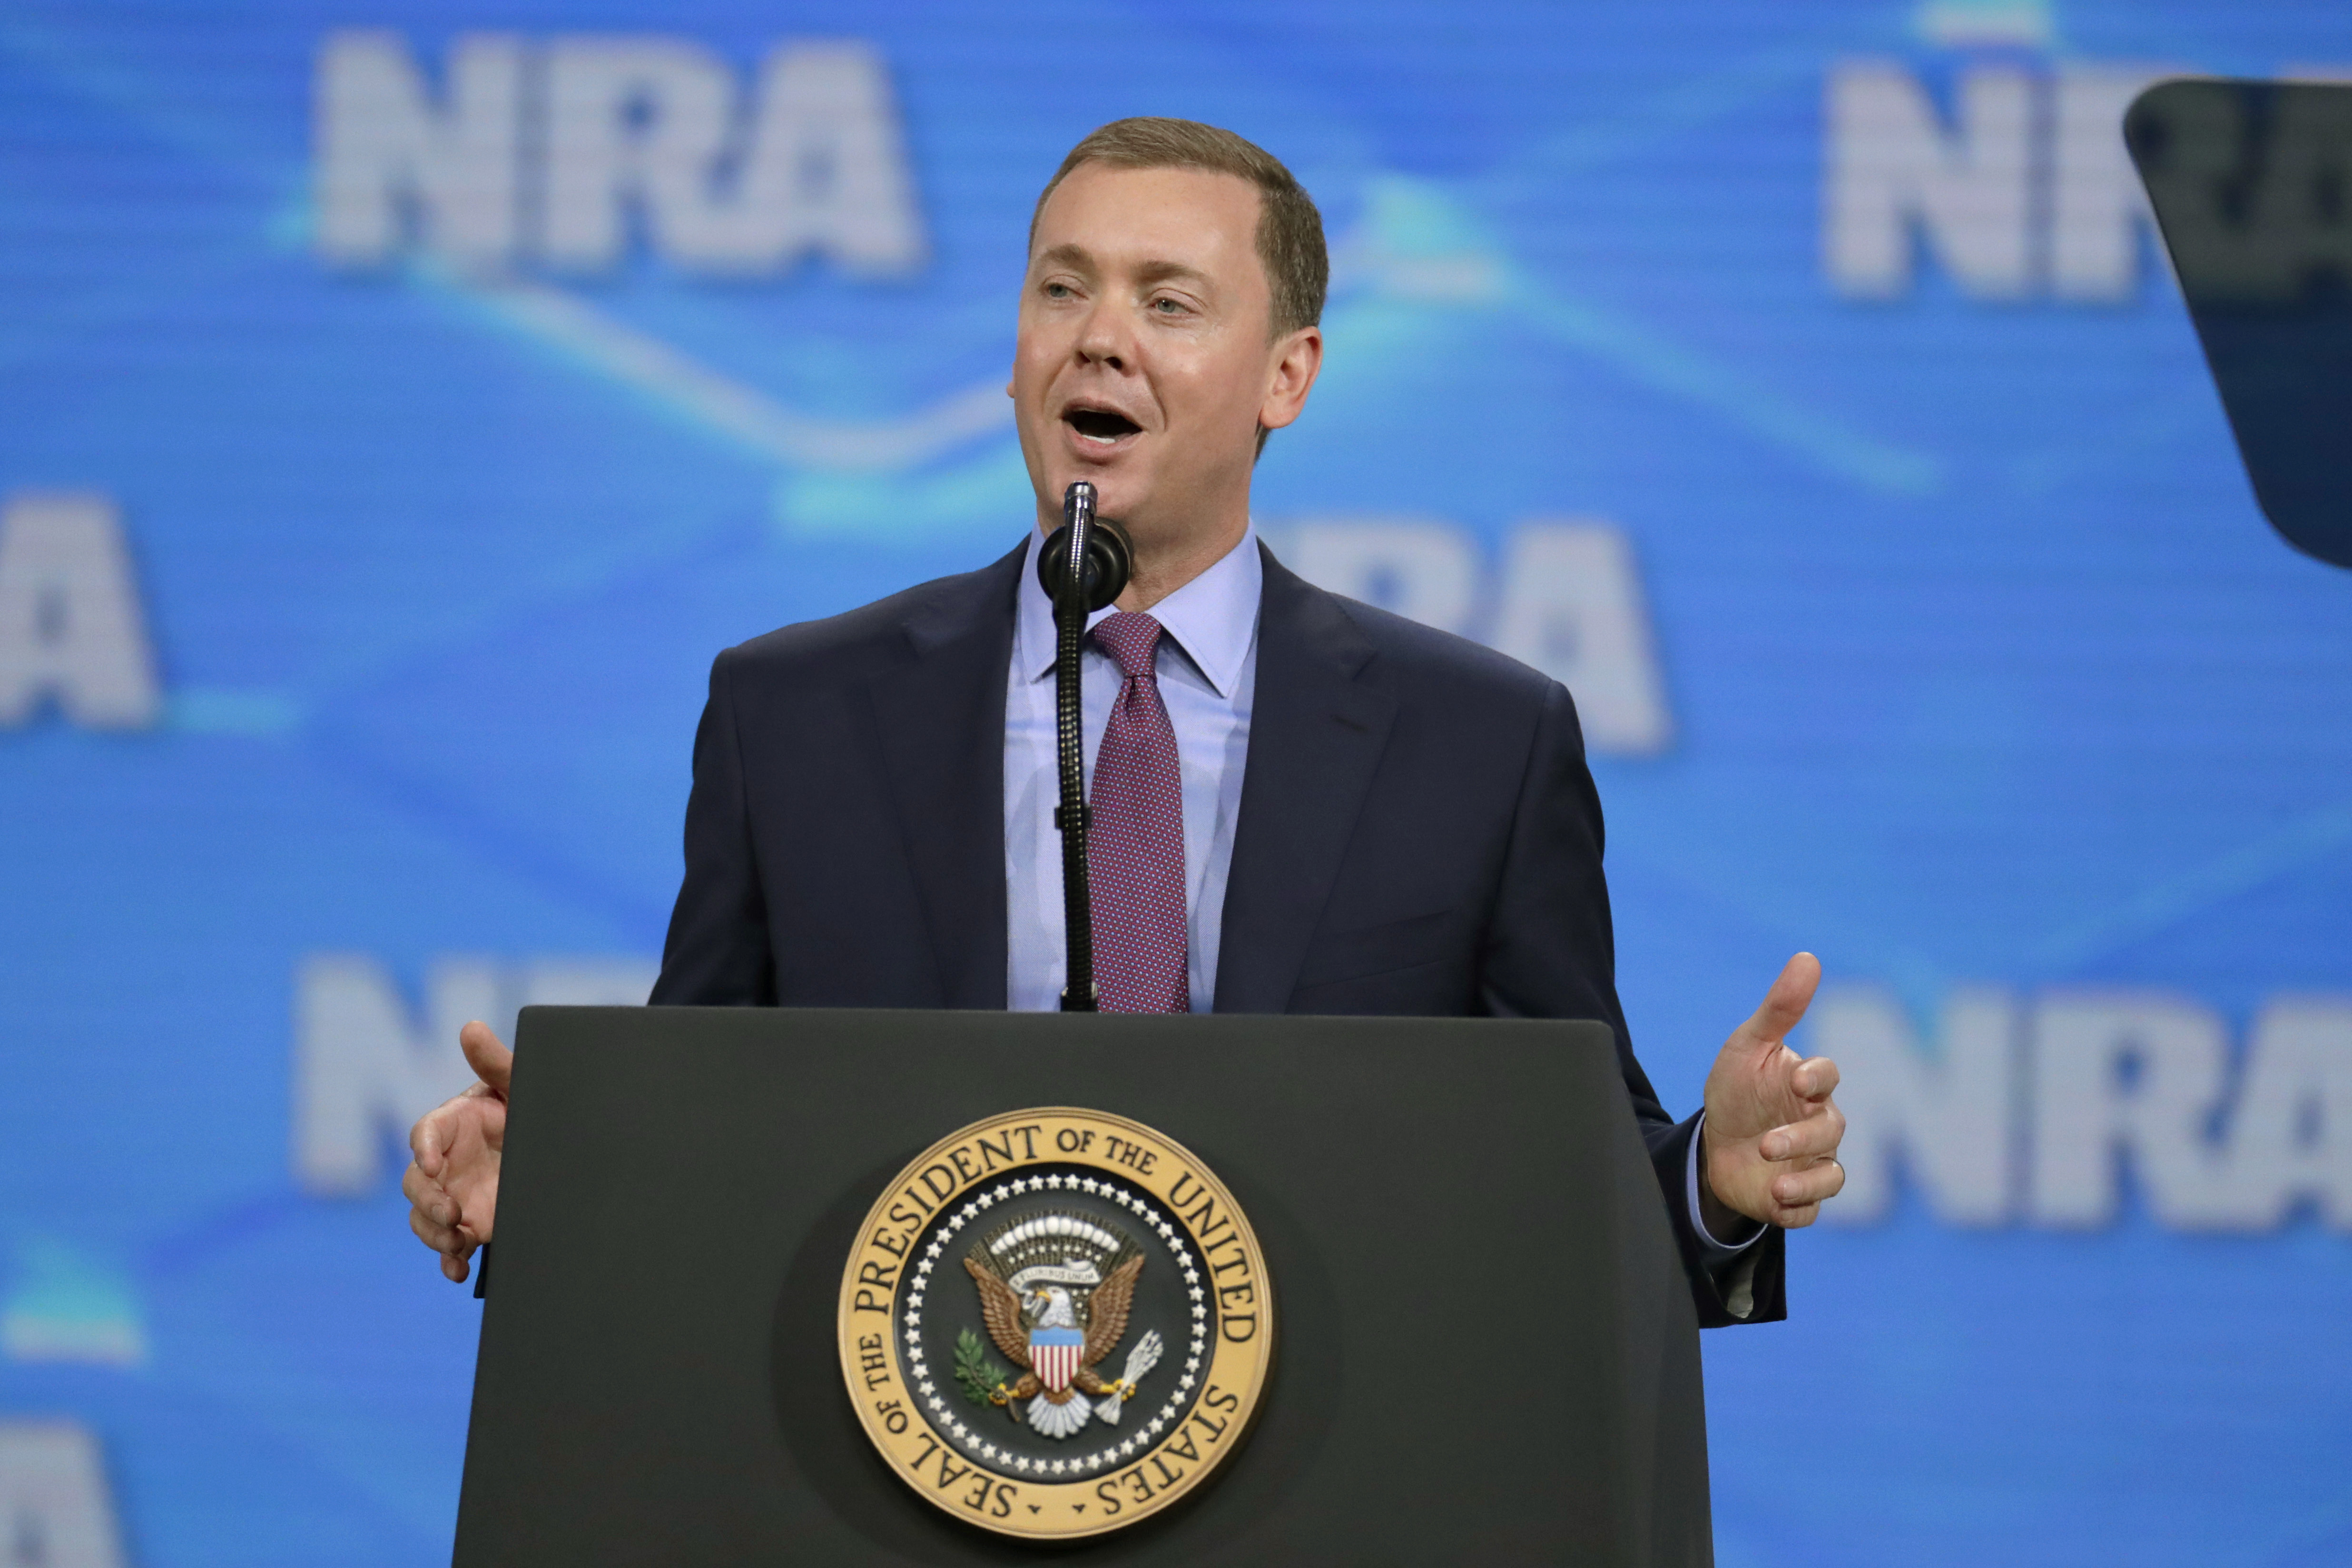 FILE- In this April 26, 2019 file photo, National Rifle Association Institute for Legislative Action Executive Director Christopher W. Cox speaks at the NRA-ILA Leadership Forum in Lucas Oil Stadium in Indianapolis. The National Rifle Association's top lobbyist has resigned in another sign of infighting within the powerful gun lobbying group, Wednesday, June 26, 2019. Cox's departure comes just days after the NRA placed him on administrative leave, claiming he was part of a failed attempt to extort the longtime CEO. (AP Photo/Michael Conroy, File)